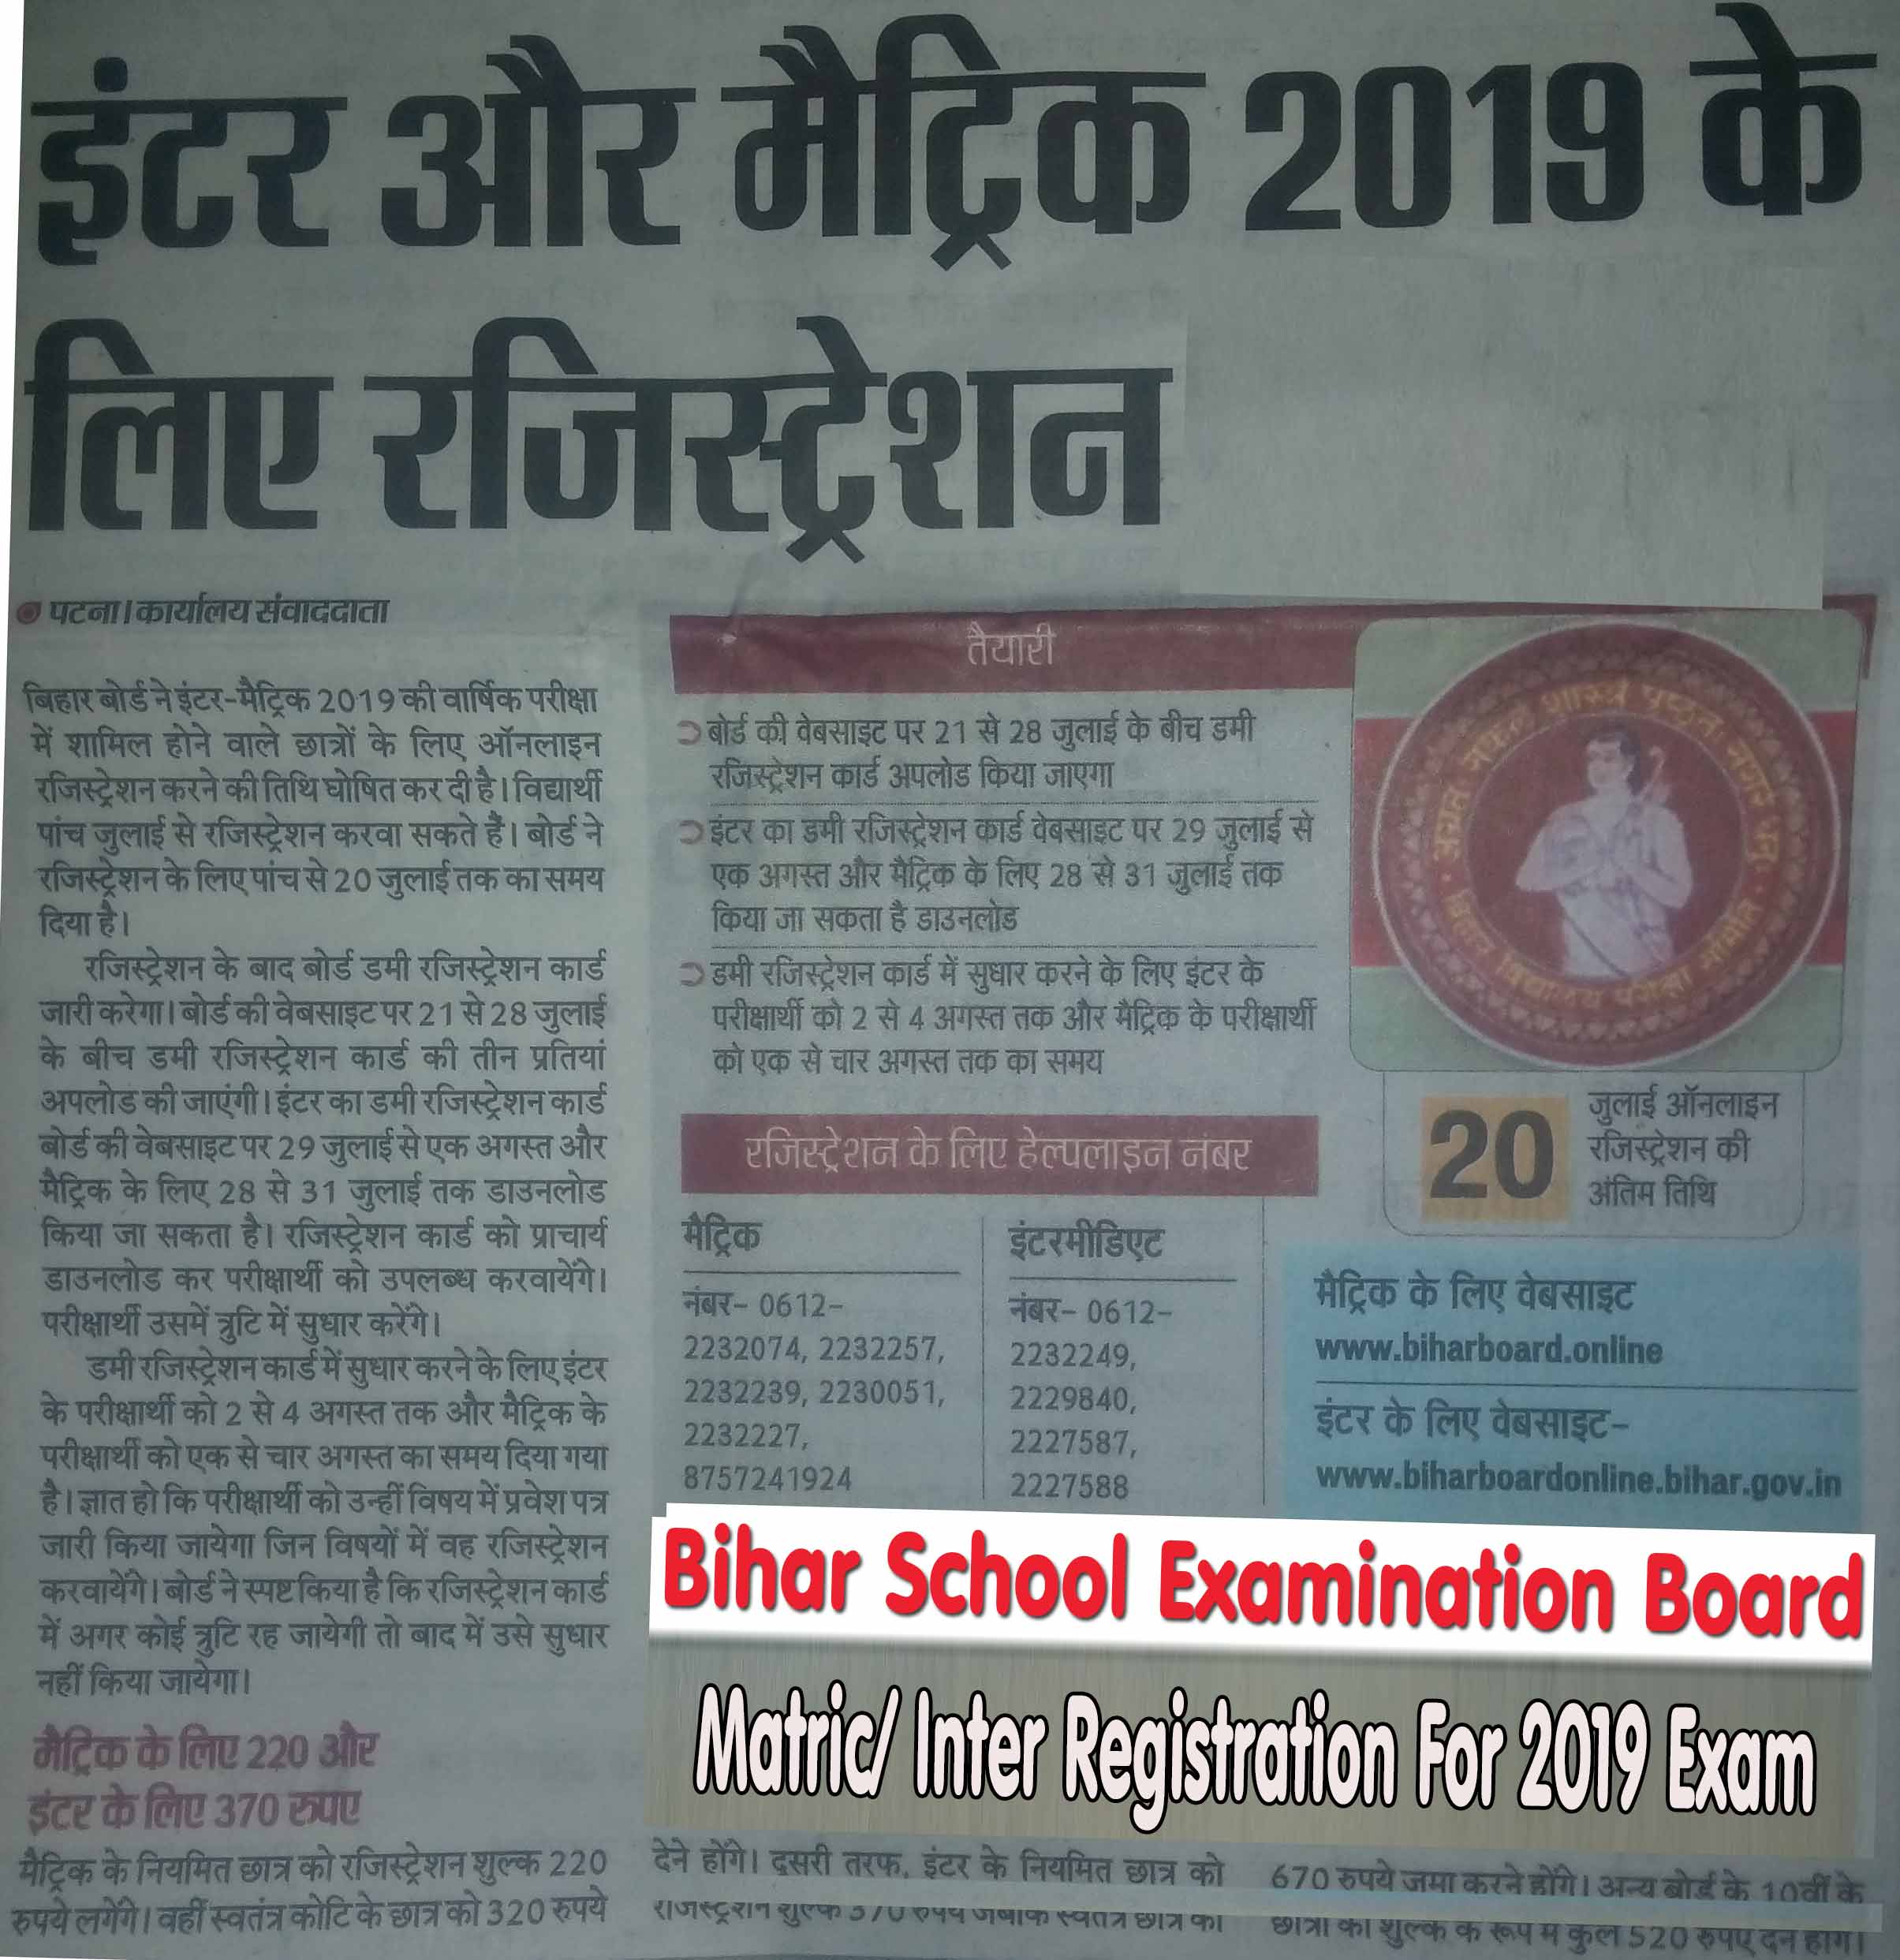 inter registration, bihar board inter registration detail 2018.